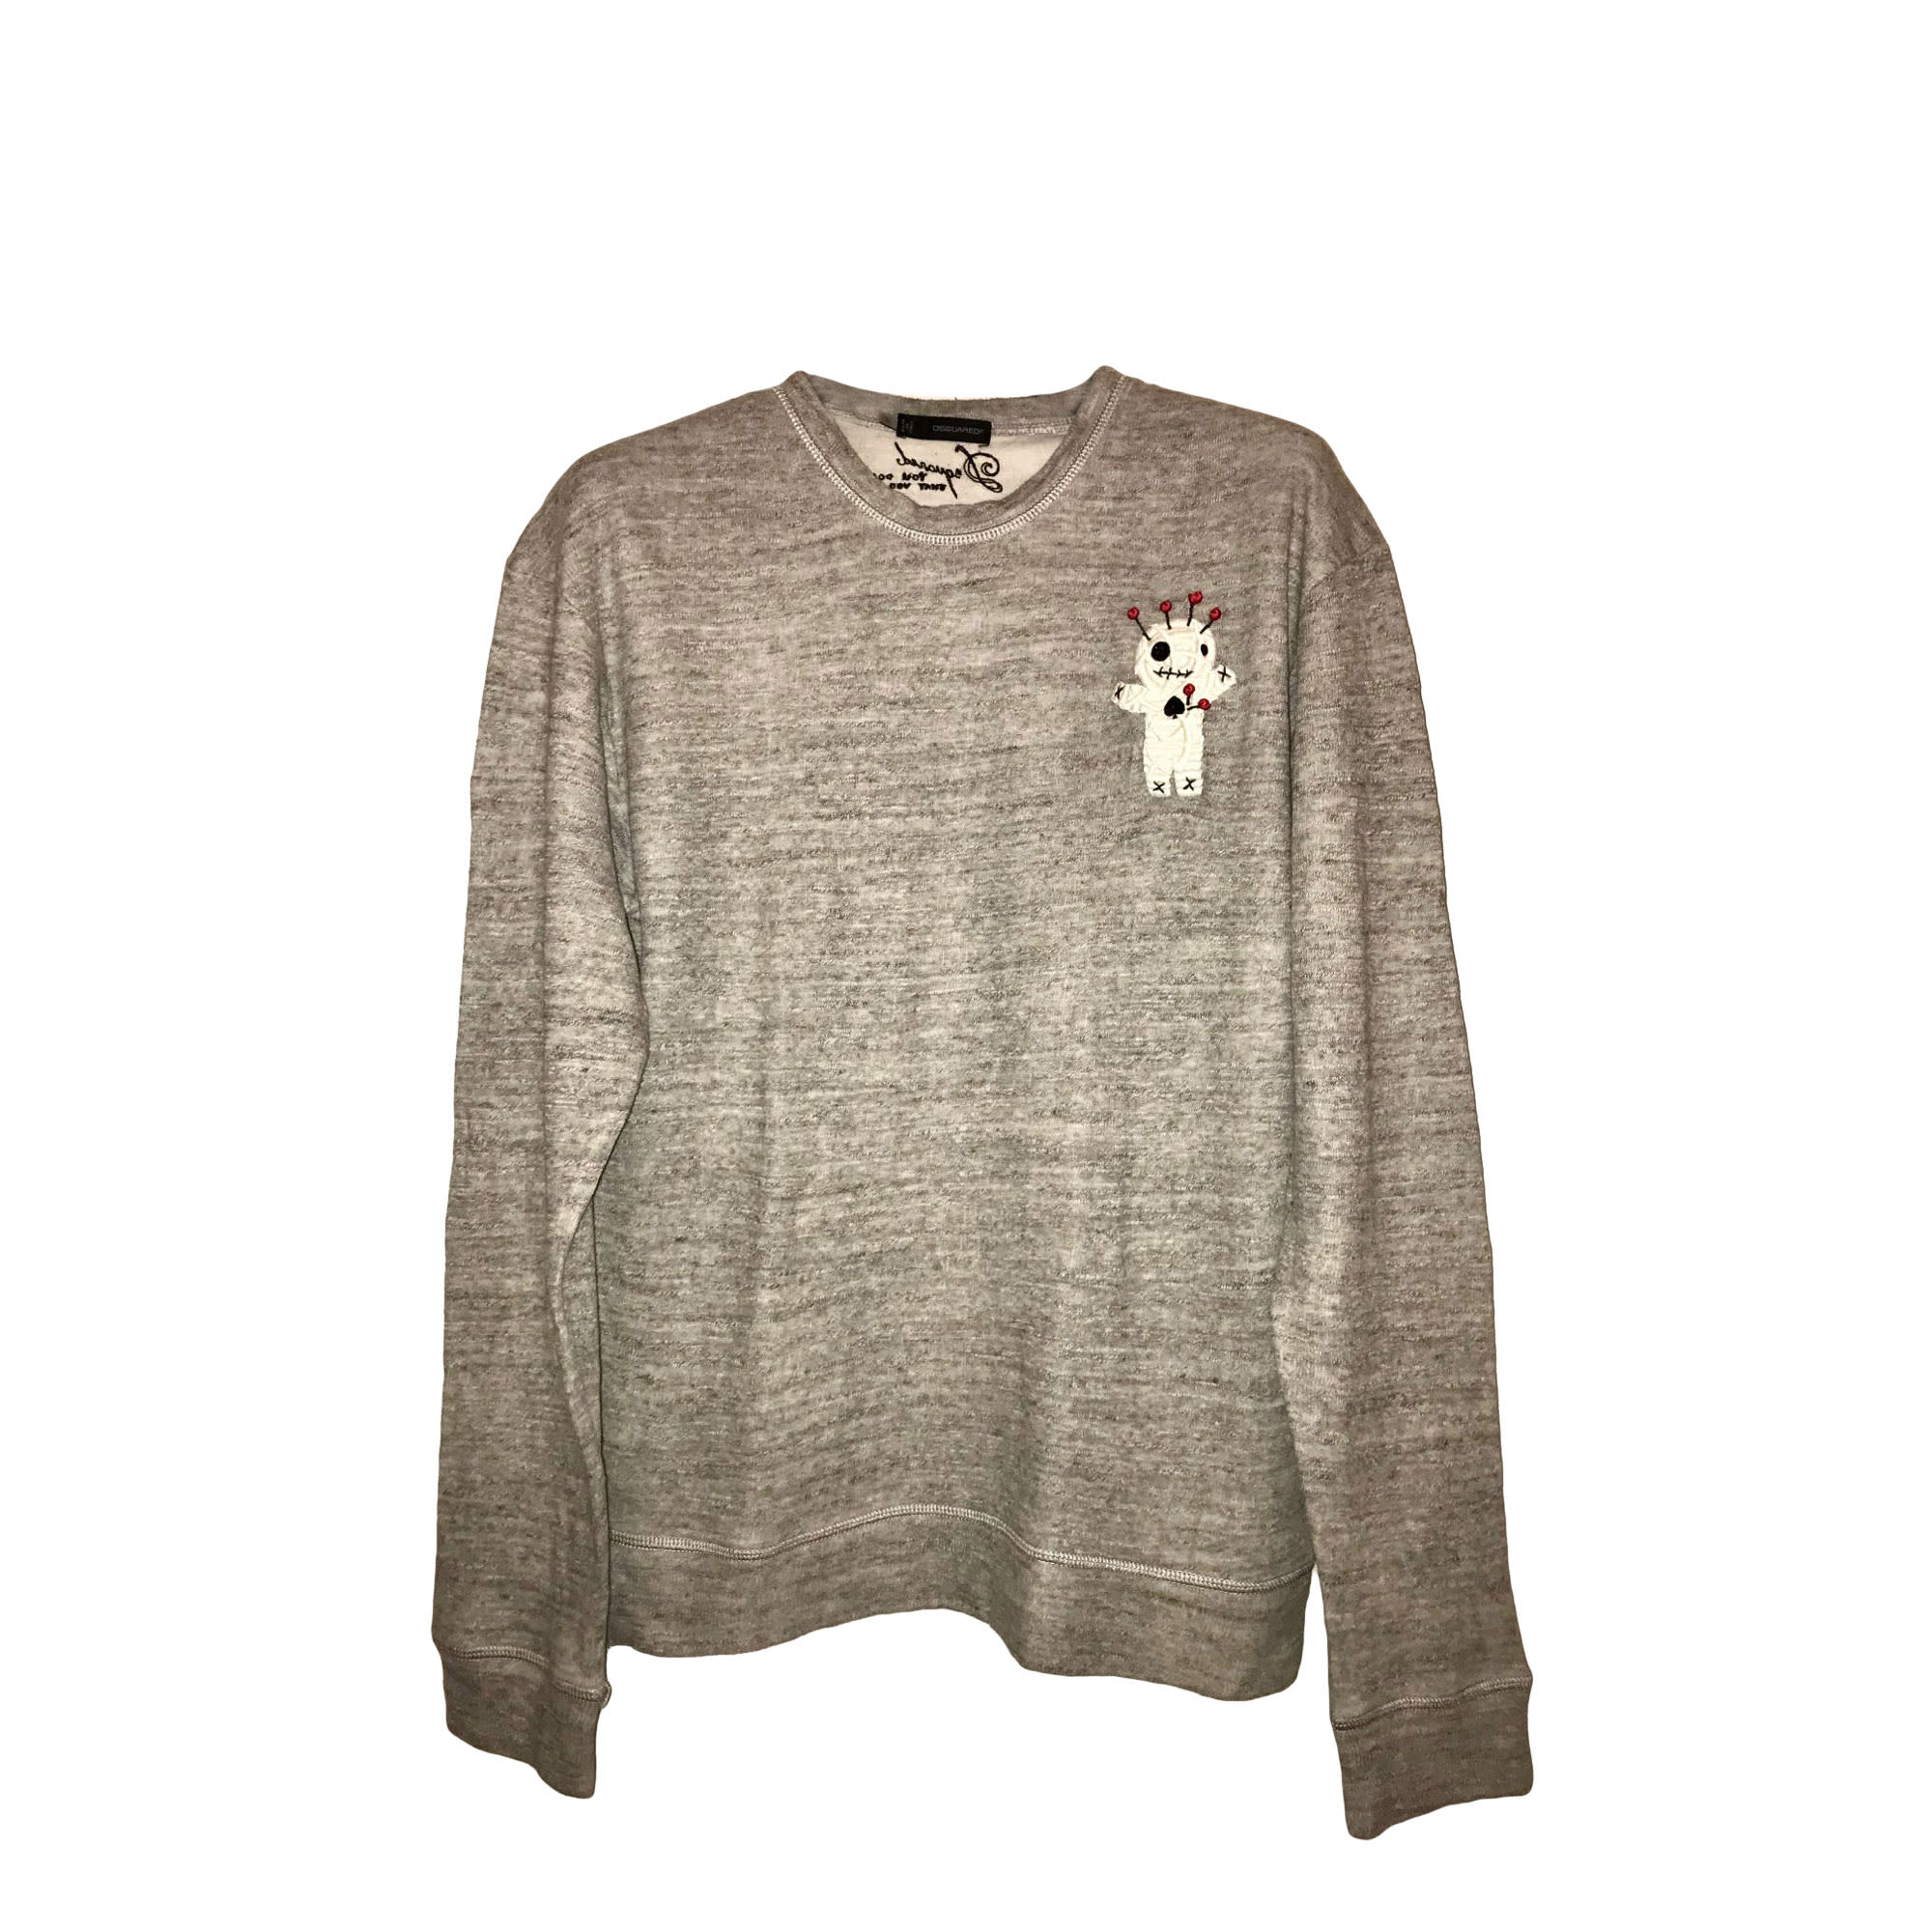 Sweater DSQUARED2 Gray, charcoal